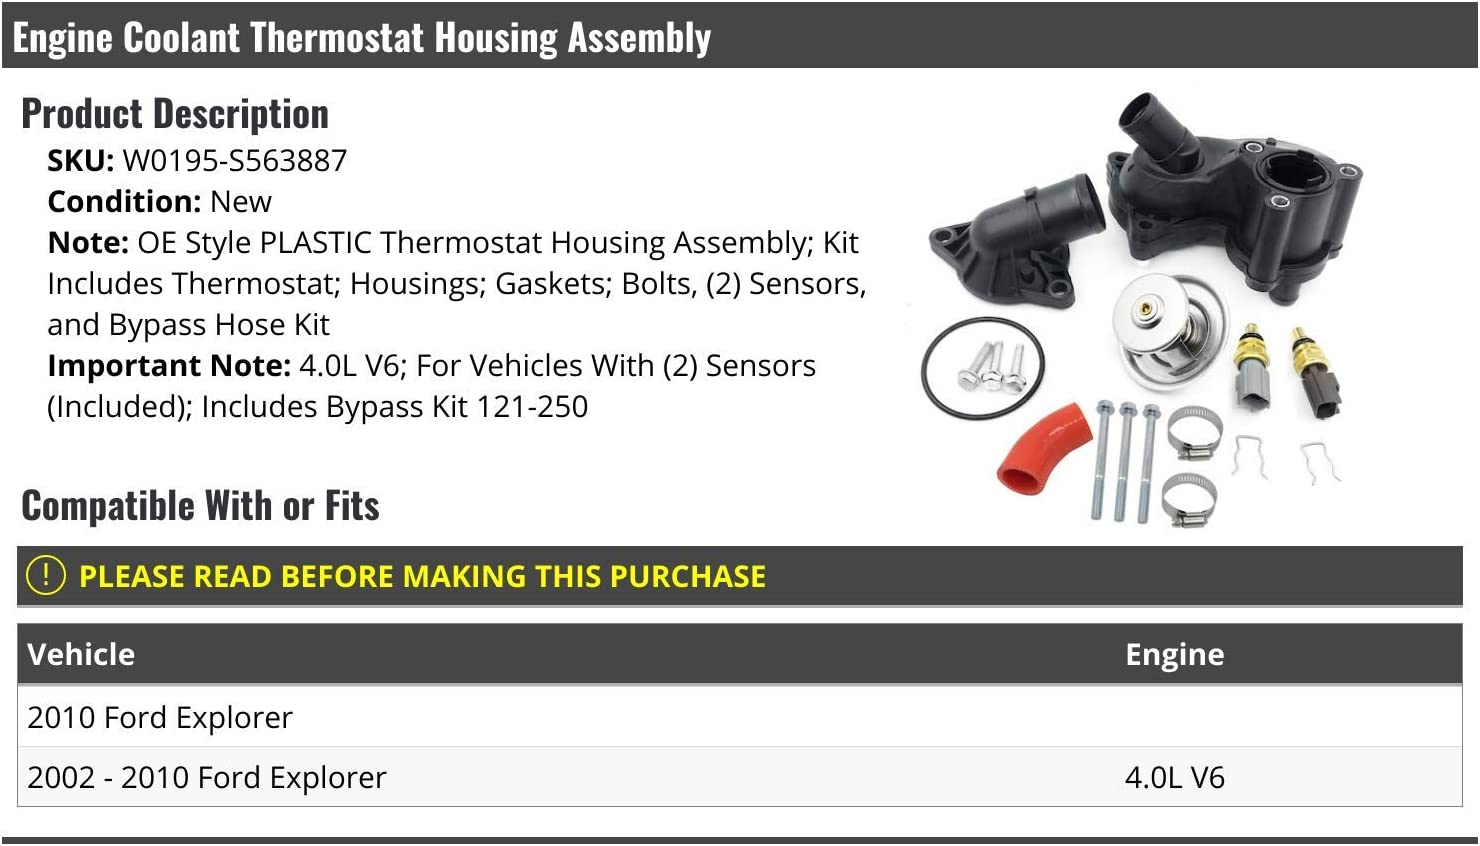 Engine Coolant Thermostat Housing Assembly Compatible with 2002-2010 Ford Explorer 4.0L V6